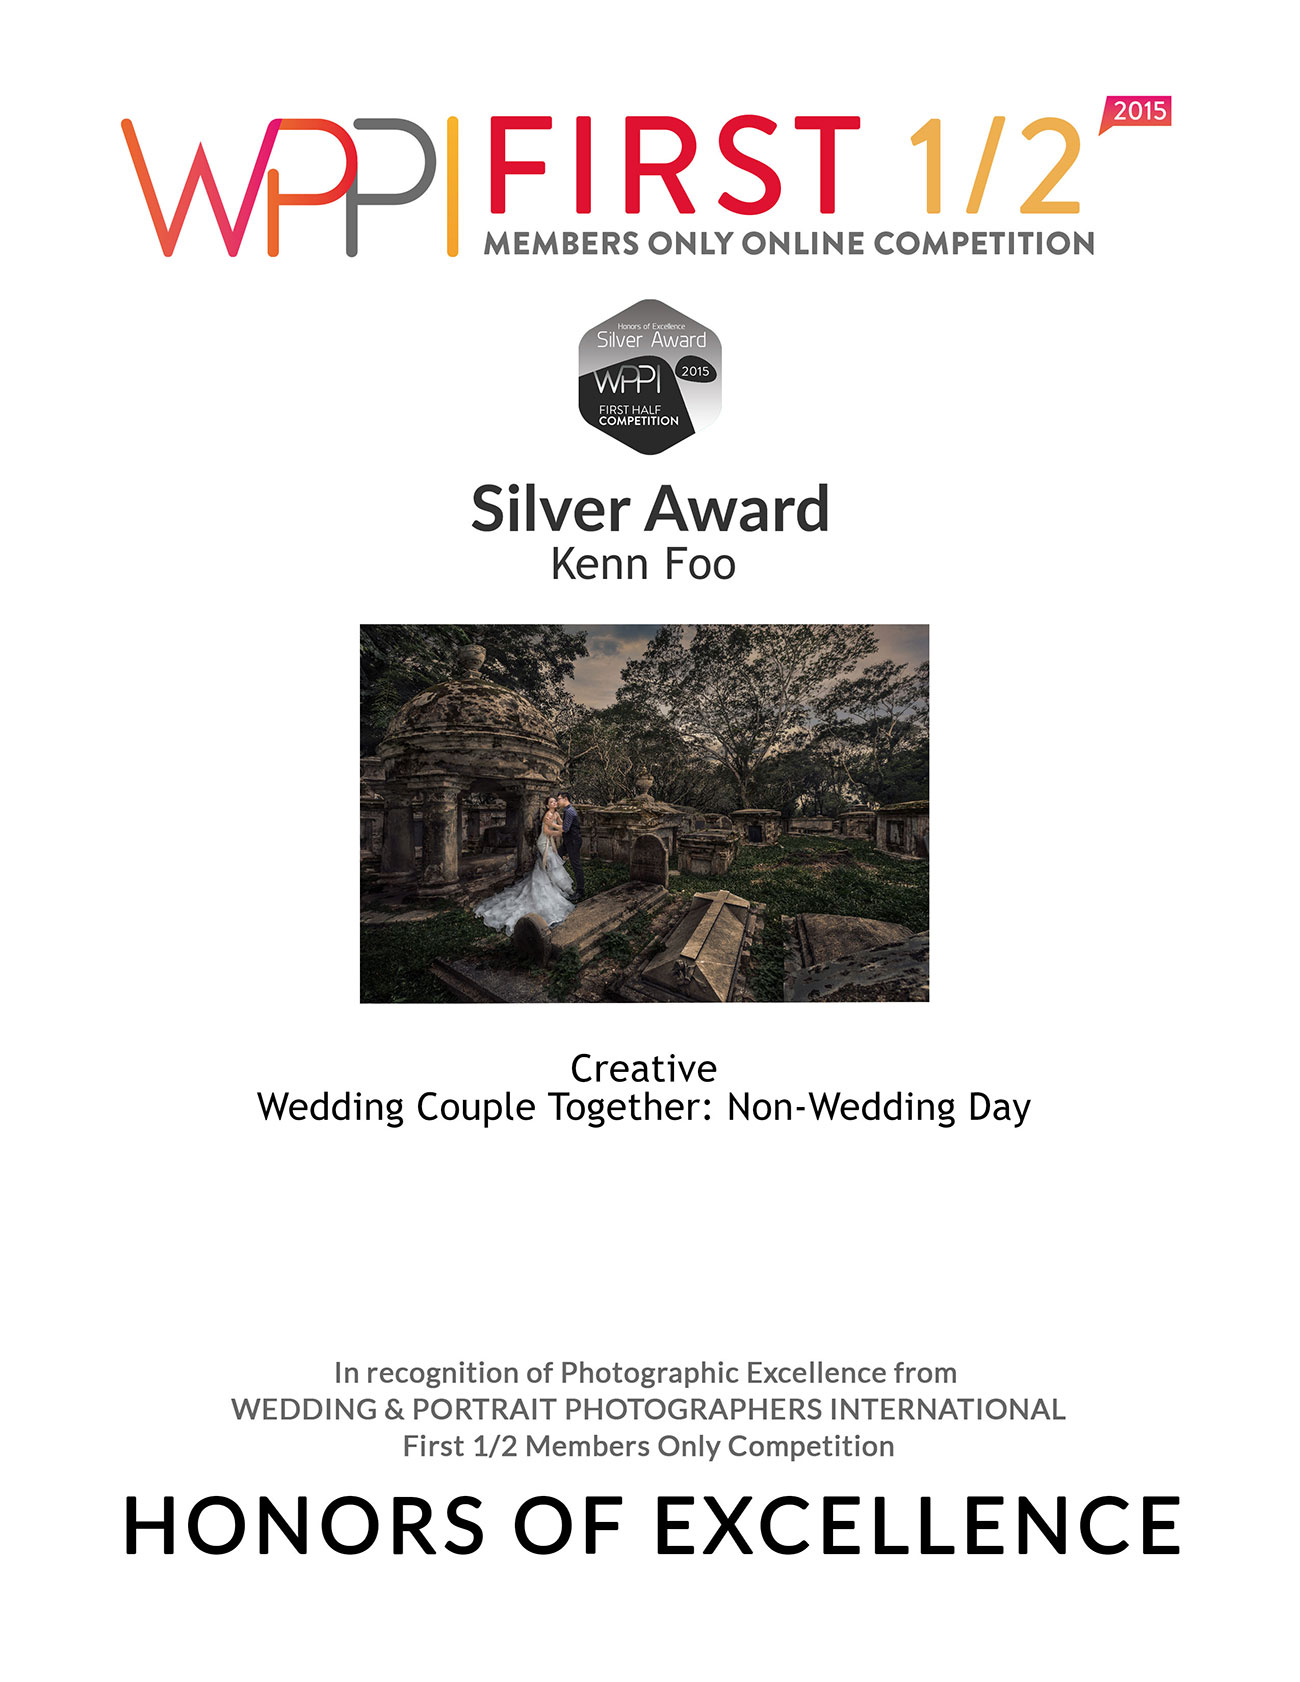 WPPIawards_2015FirstHalf_002